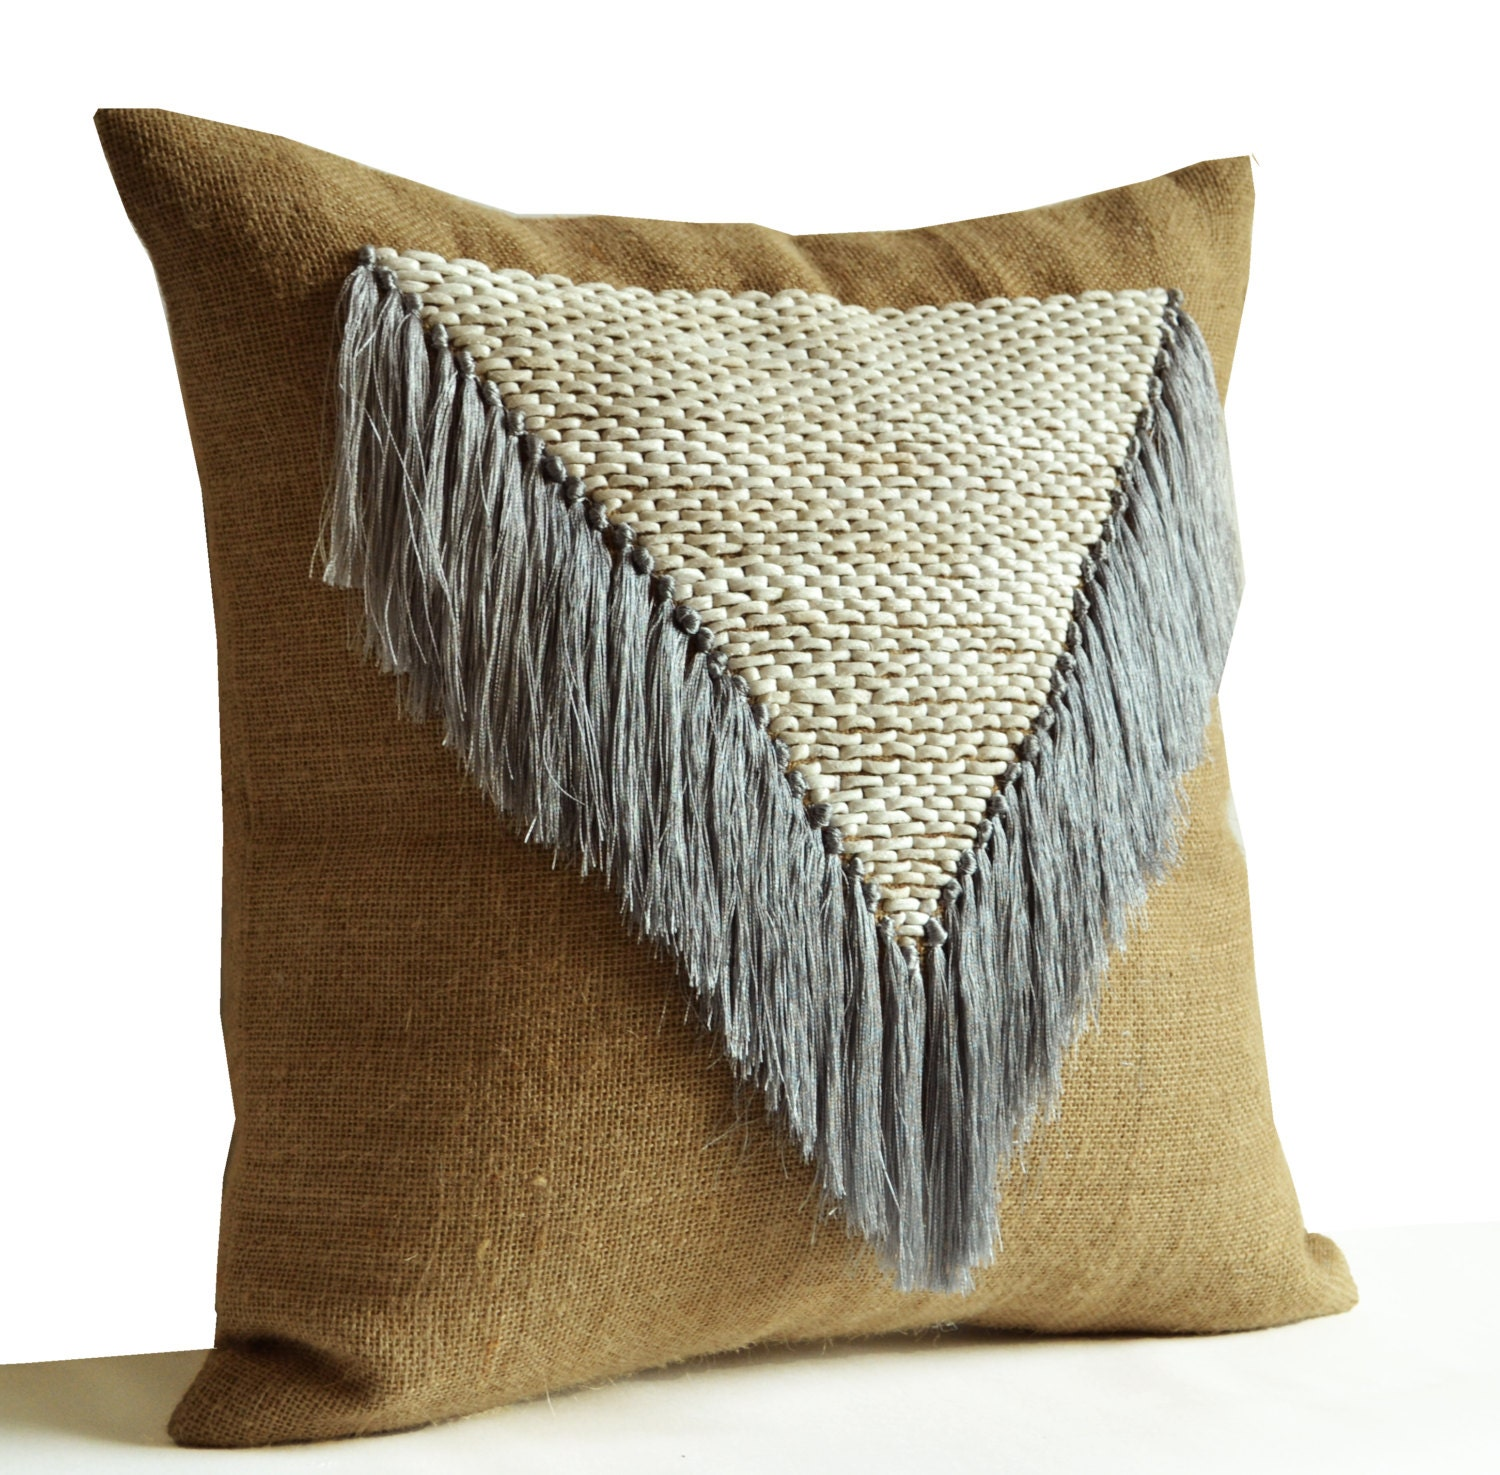 Bohemian Style Throw Pillows : Shabby Chic Pillow Bohemian Throw Pillow Boho Decor Hand